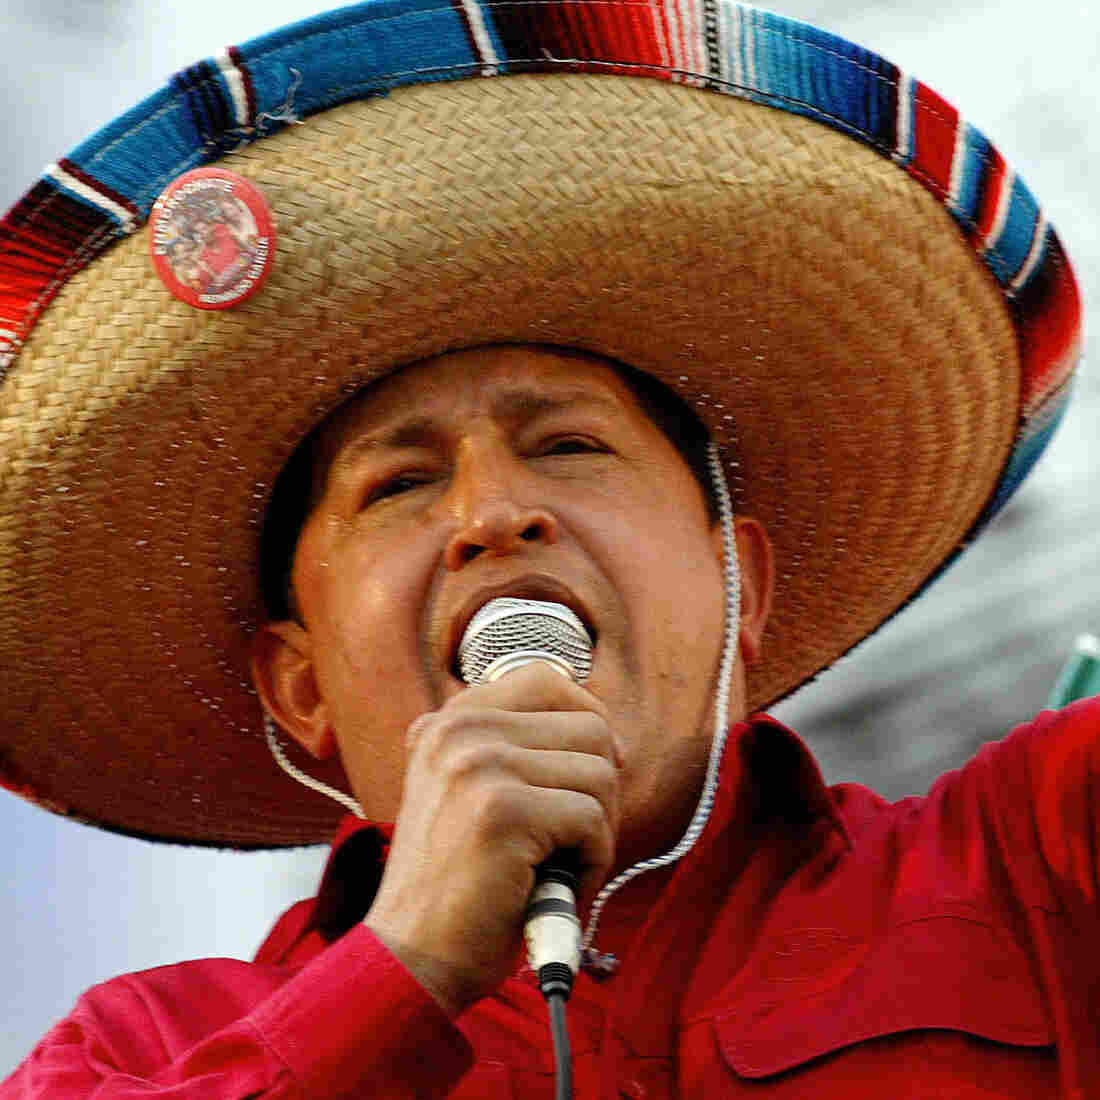 Always a showman, Venezuelan President Hugo Chavez, who died Tuesday, sings folk songs with a mariachi group in the capital, Caracas, in 2005.